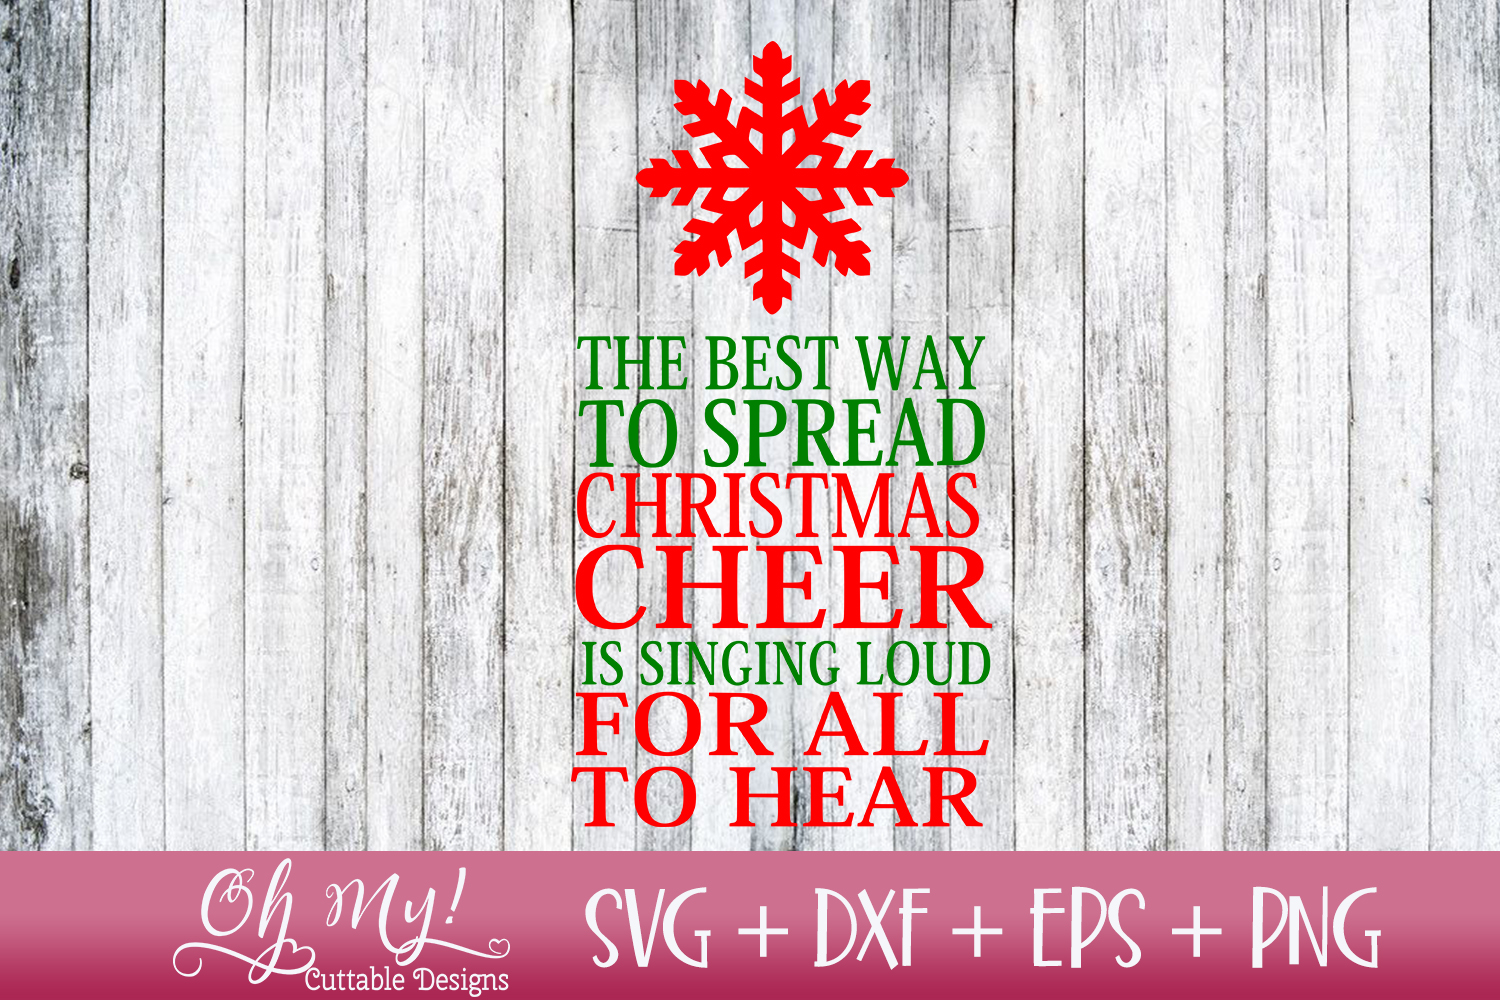 Spread Christmas Cheer - SVG DXF EPS PNG Cutting File example image 1